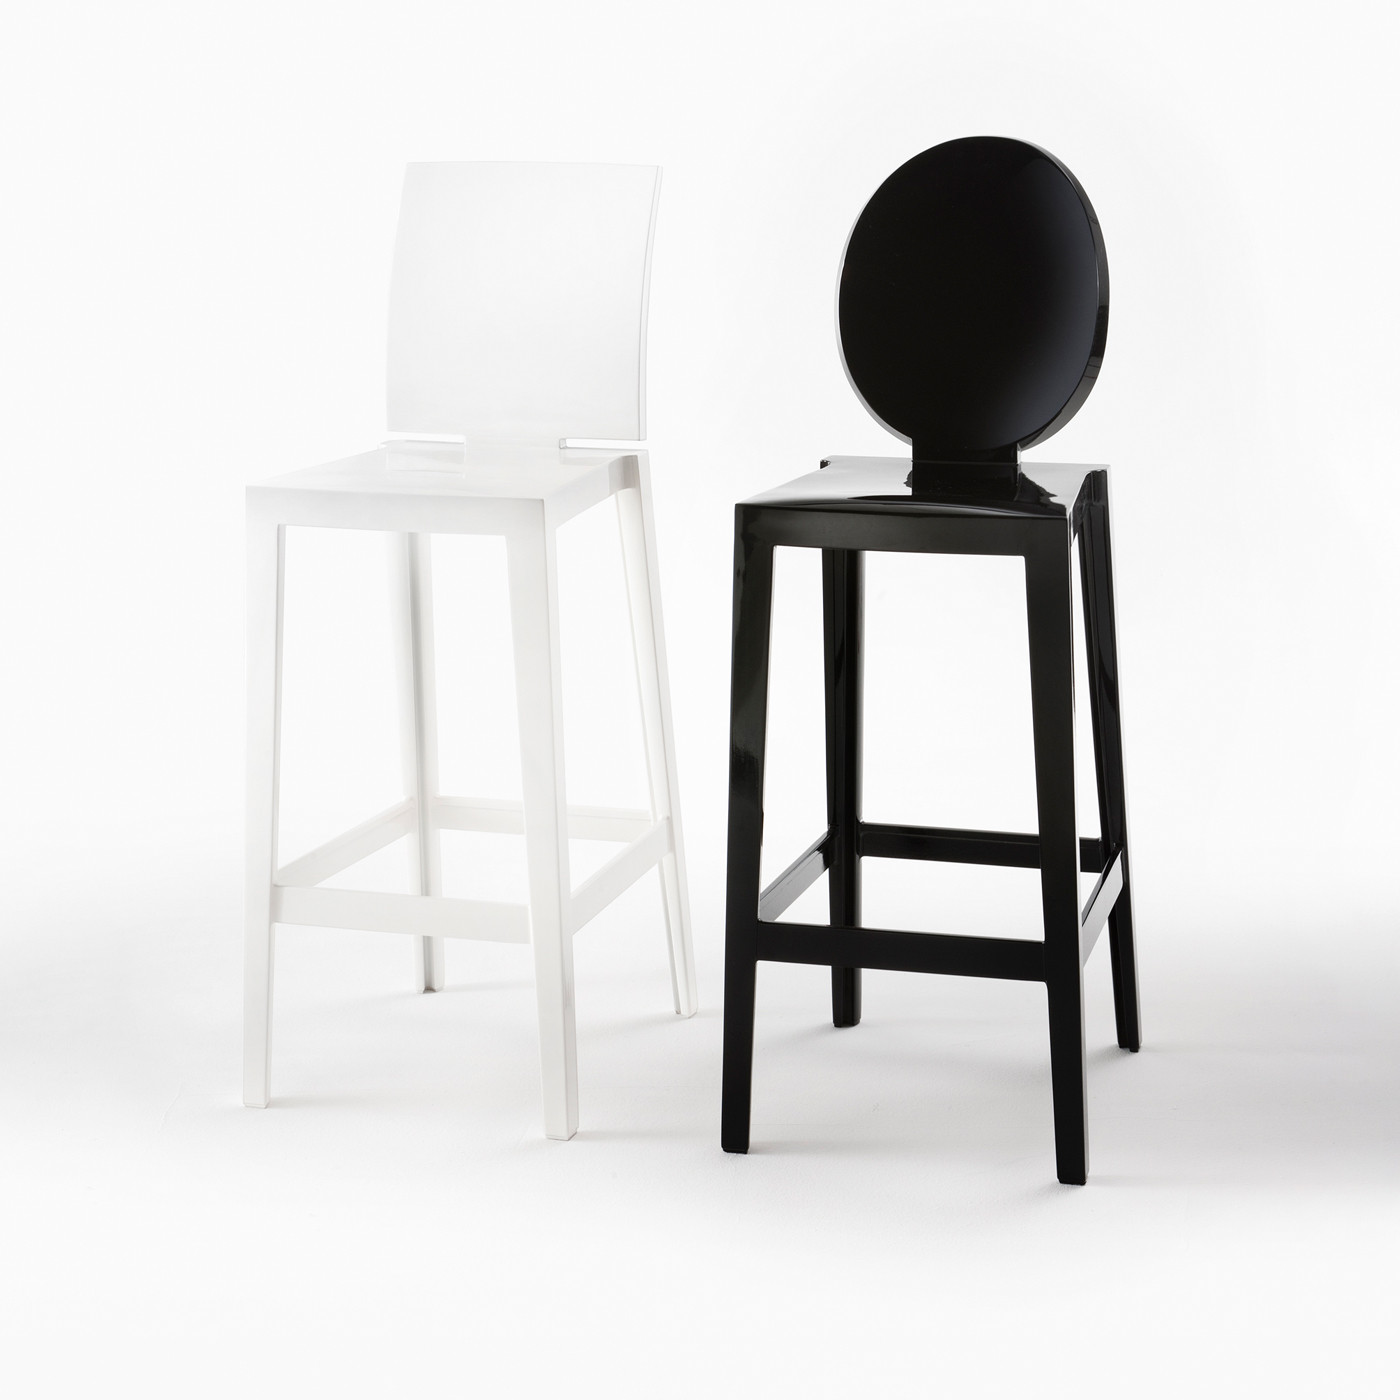 One MoreOne tabouret cm hauteur Ghost de More Please bar65 d'assise Kartell ZuwlXiPOkT